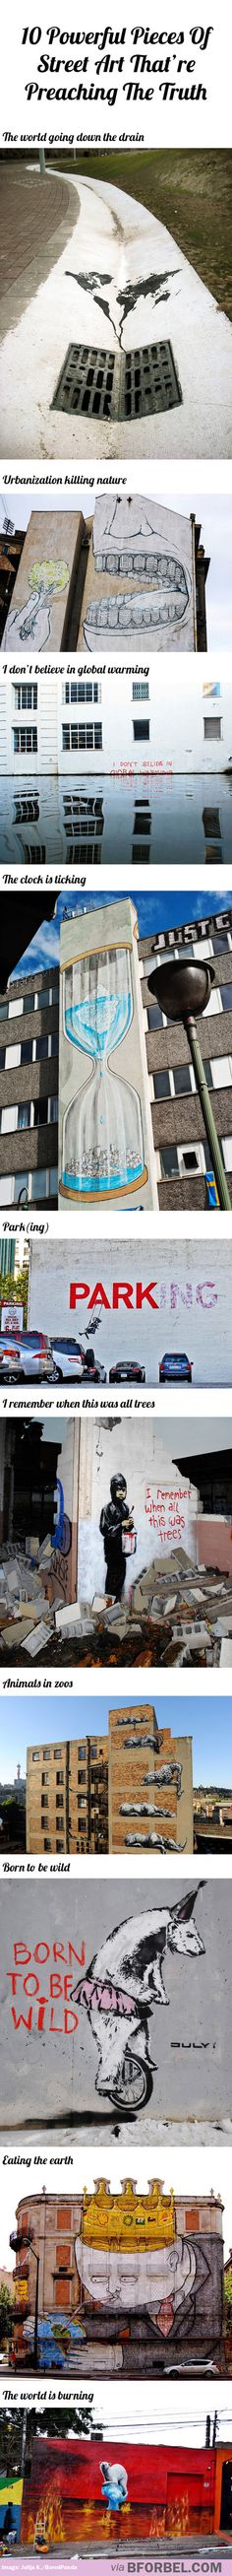 10 powerful pieces of street art that're preaching the truth